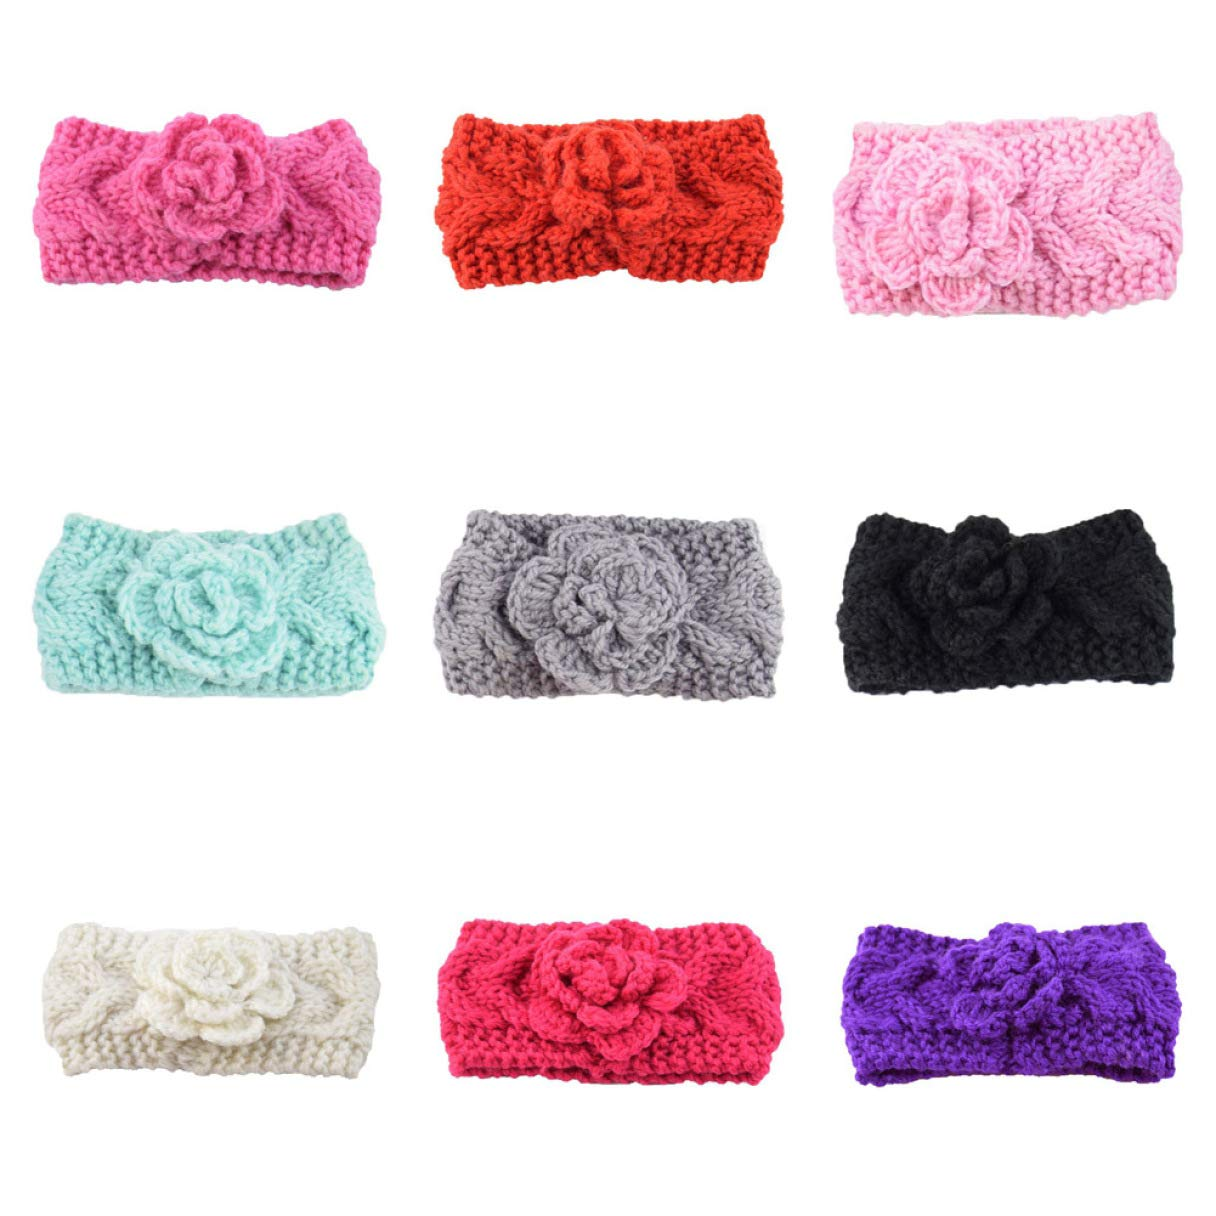 BoshILun Spiritual 1Pc Knitting Camellia Twisted Knitted Woolen Set Baby Warm Hair Band Headband Fashion for Birthday Valentines Day Anniversary